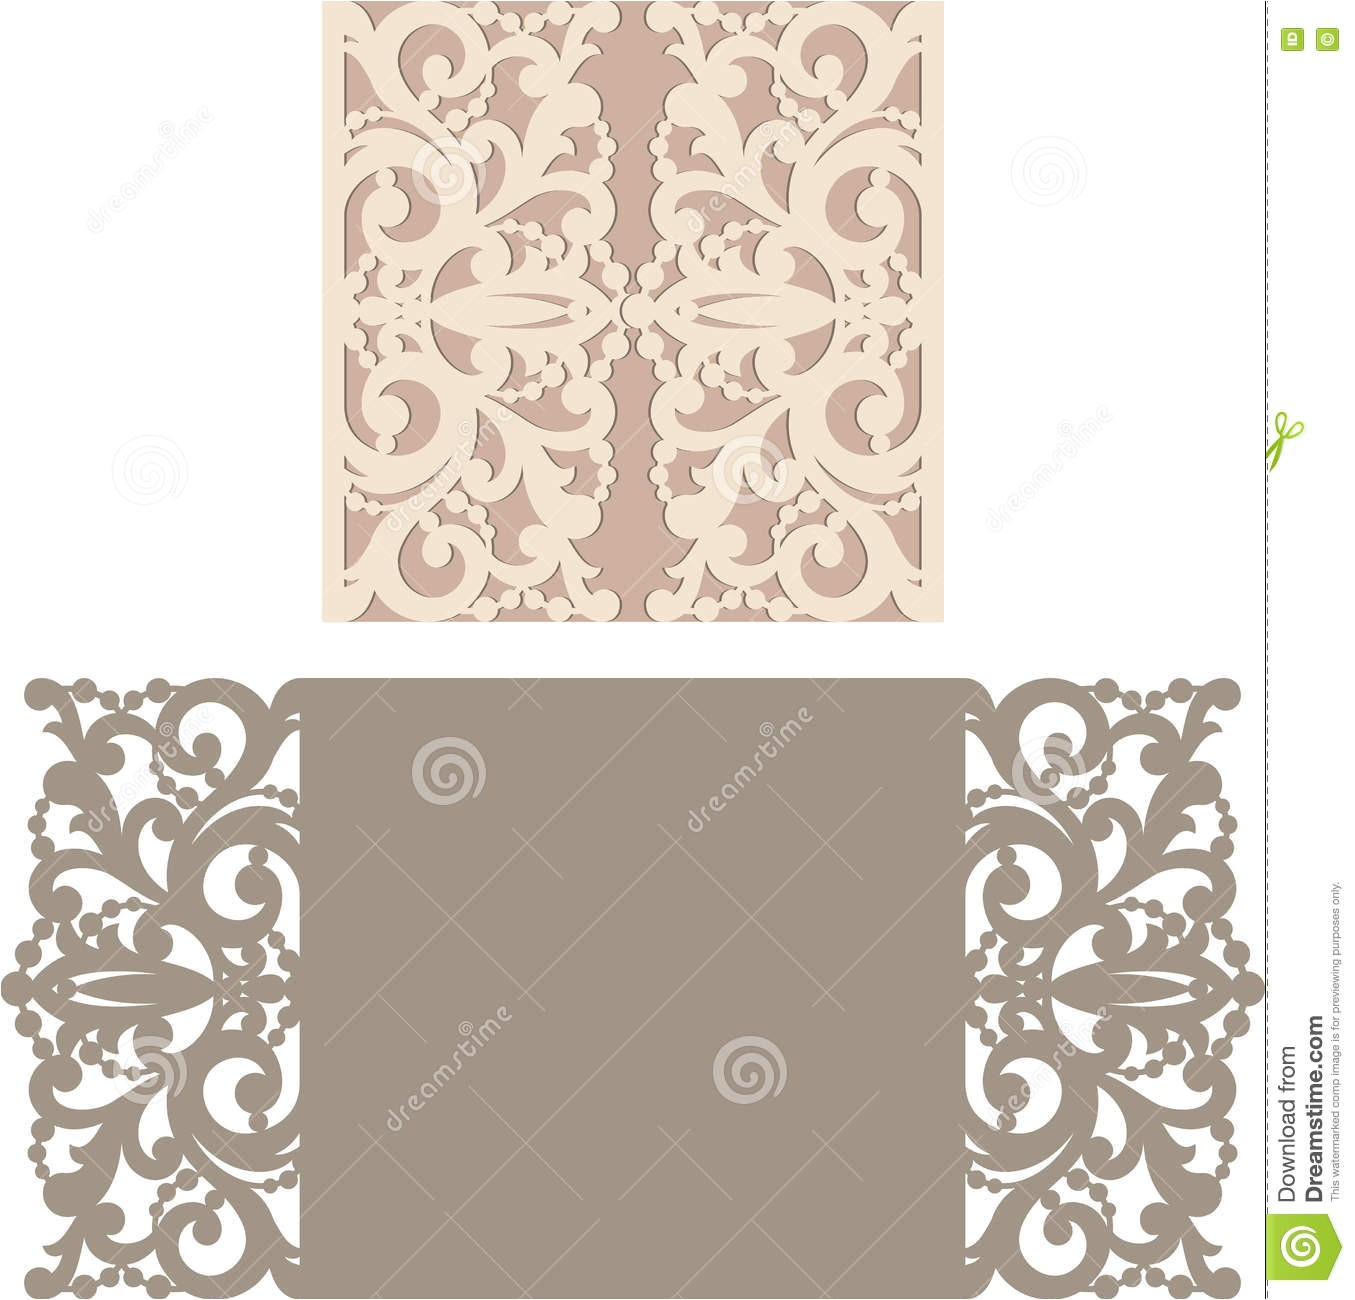 stock illustration laser cut envelope template invitation wedding card cutting pattern image73943466